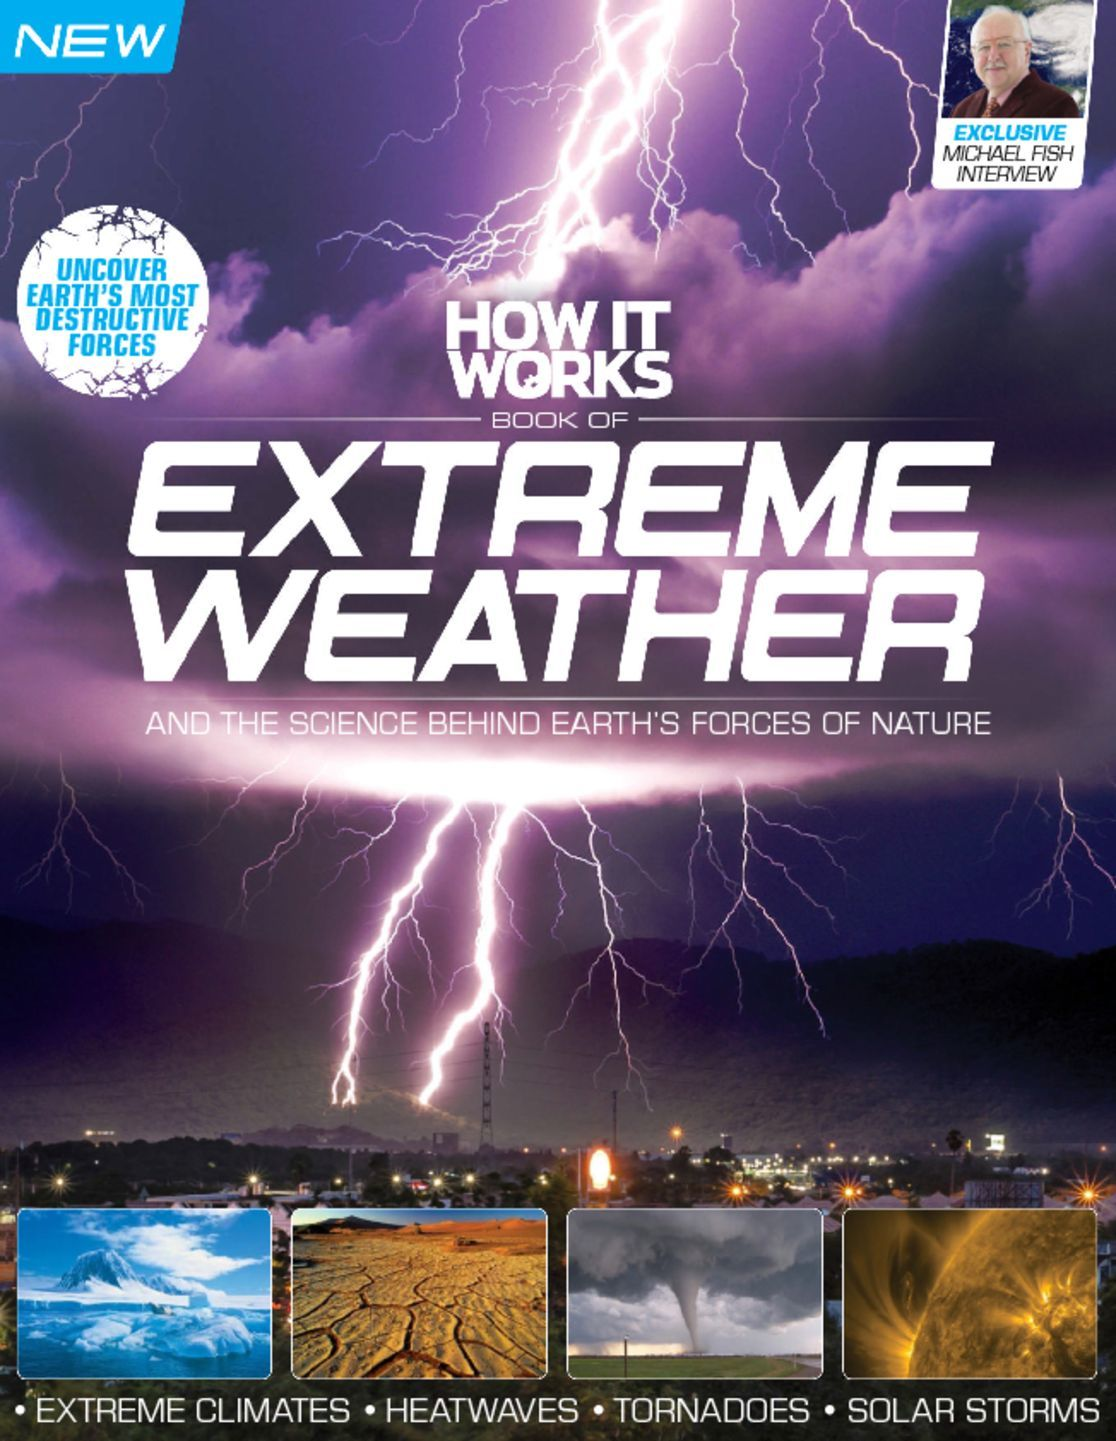 how it works book of extreme weather magazine  digital